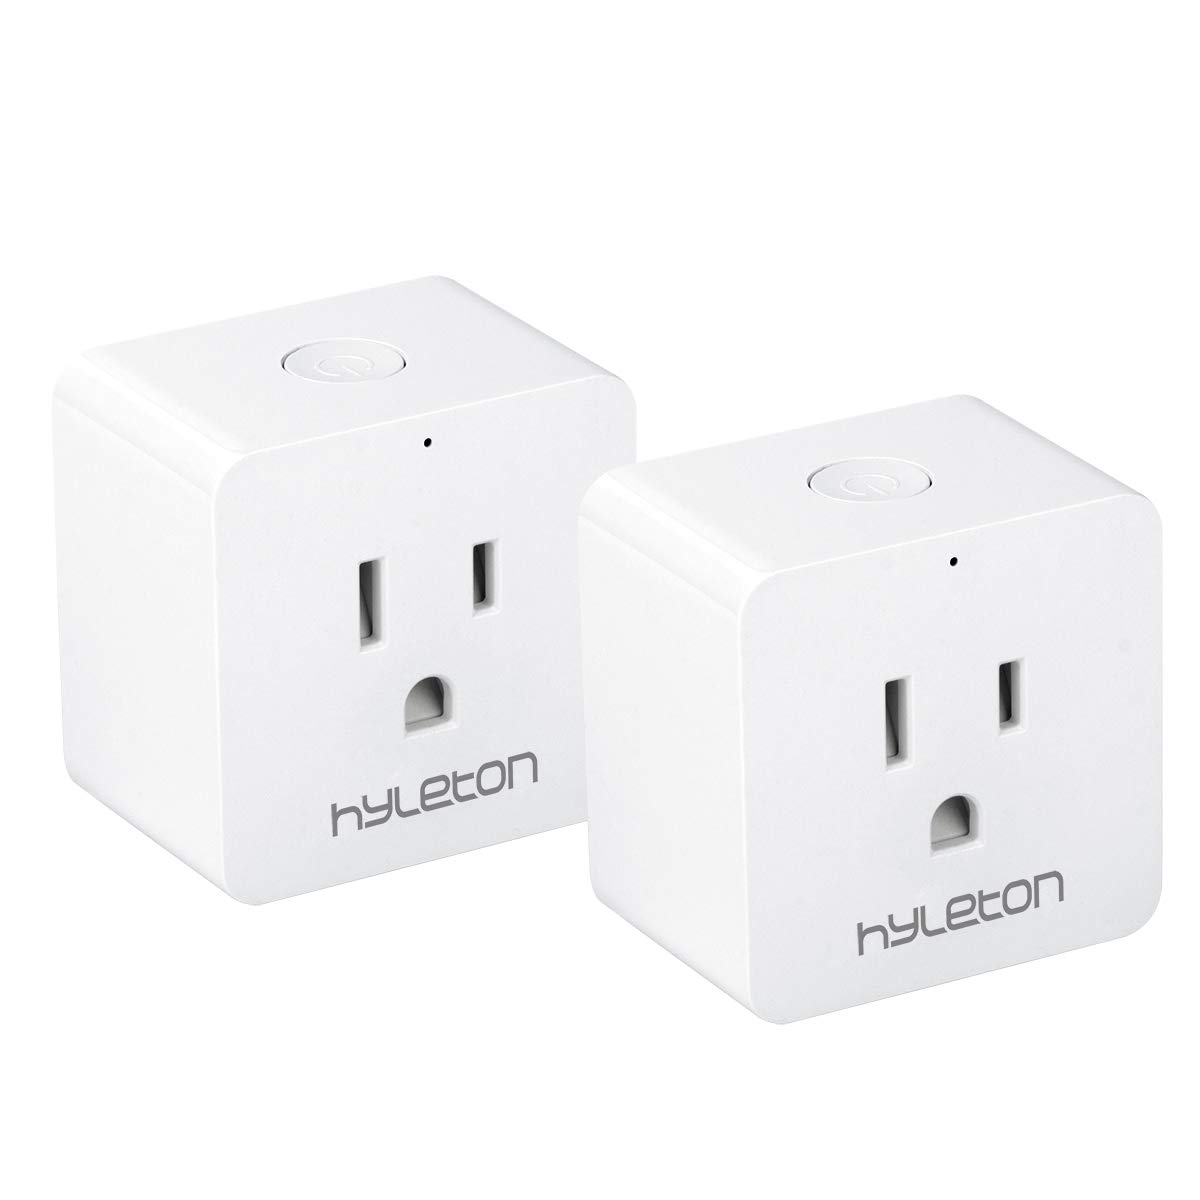 Wifi Smart Plug Hyleton 15 Amp Smart Plug for Alexa and Google Assitant, Control your Devices from Anywhere(311-2P)